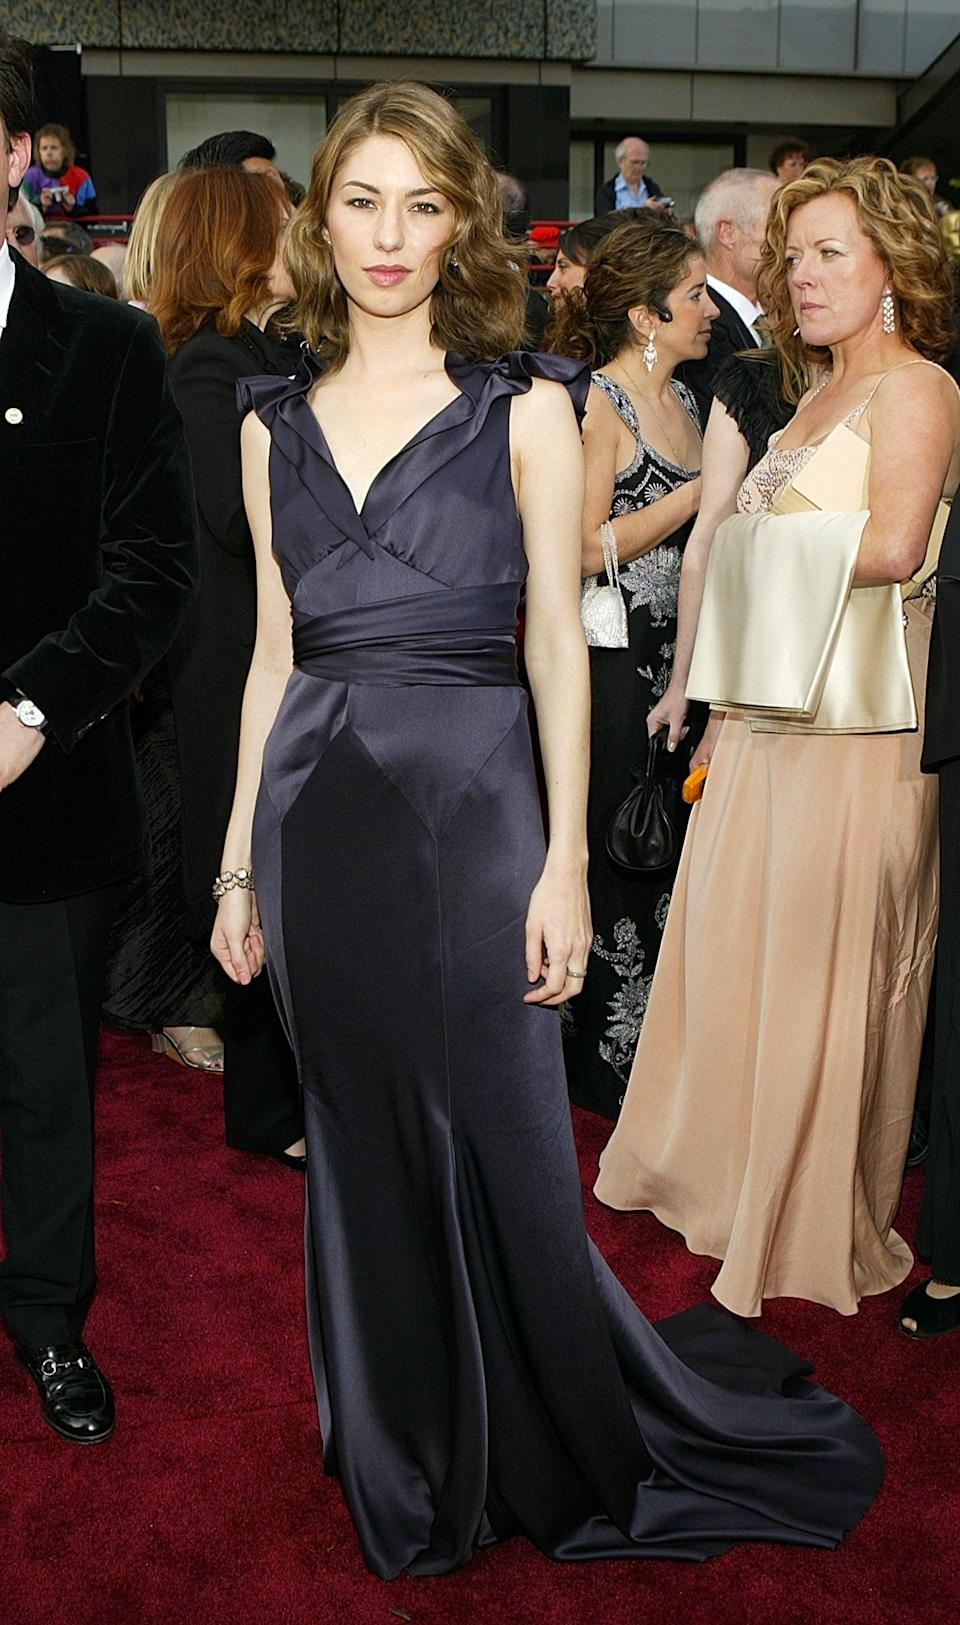 <p>The filmmaker supported her longtime friend Marc Jacobs when she chose one of his dresses for the red carpet.</p>